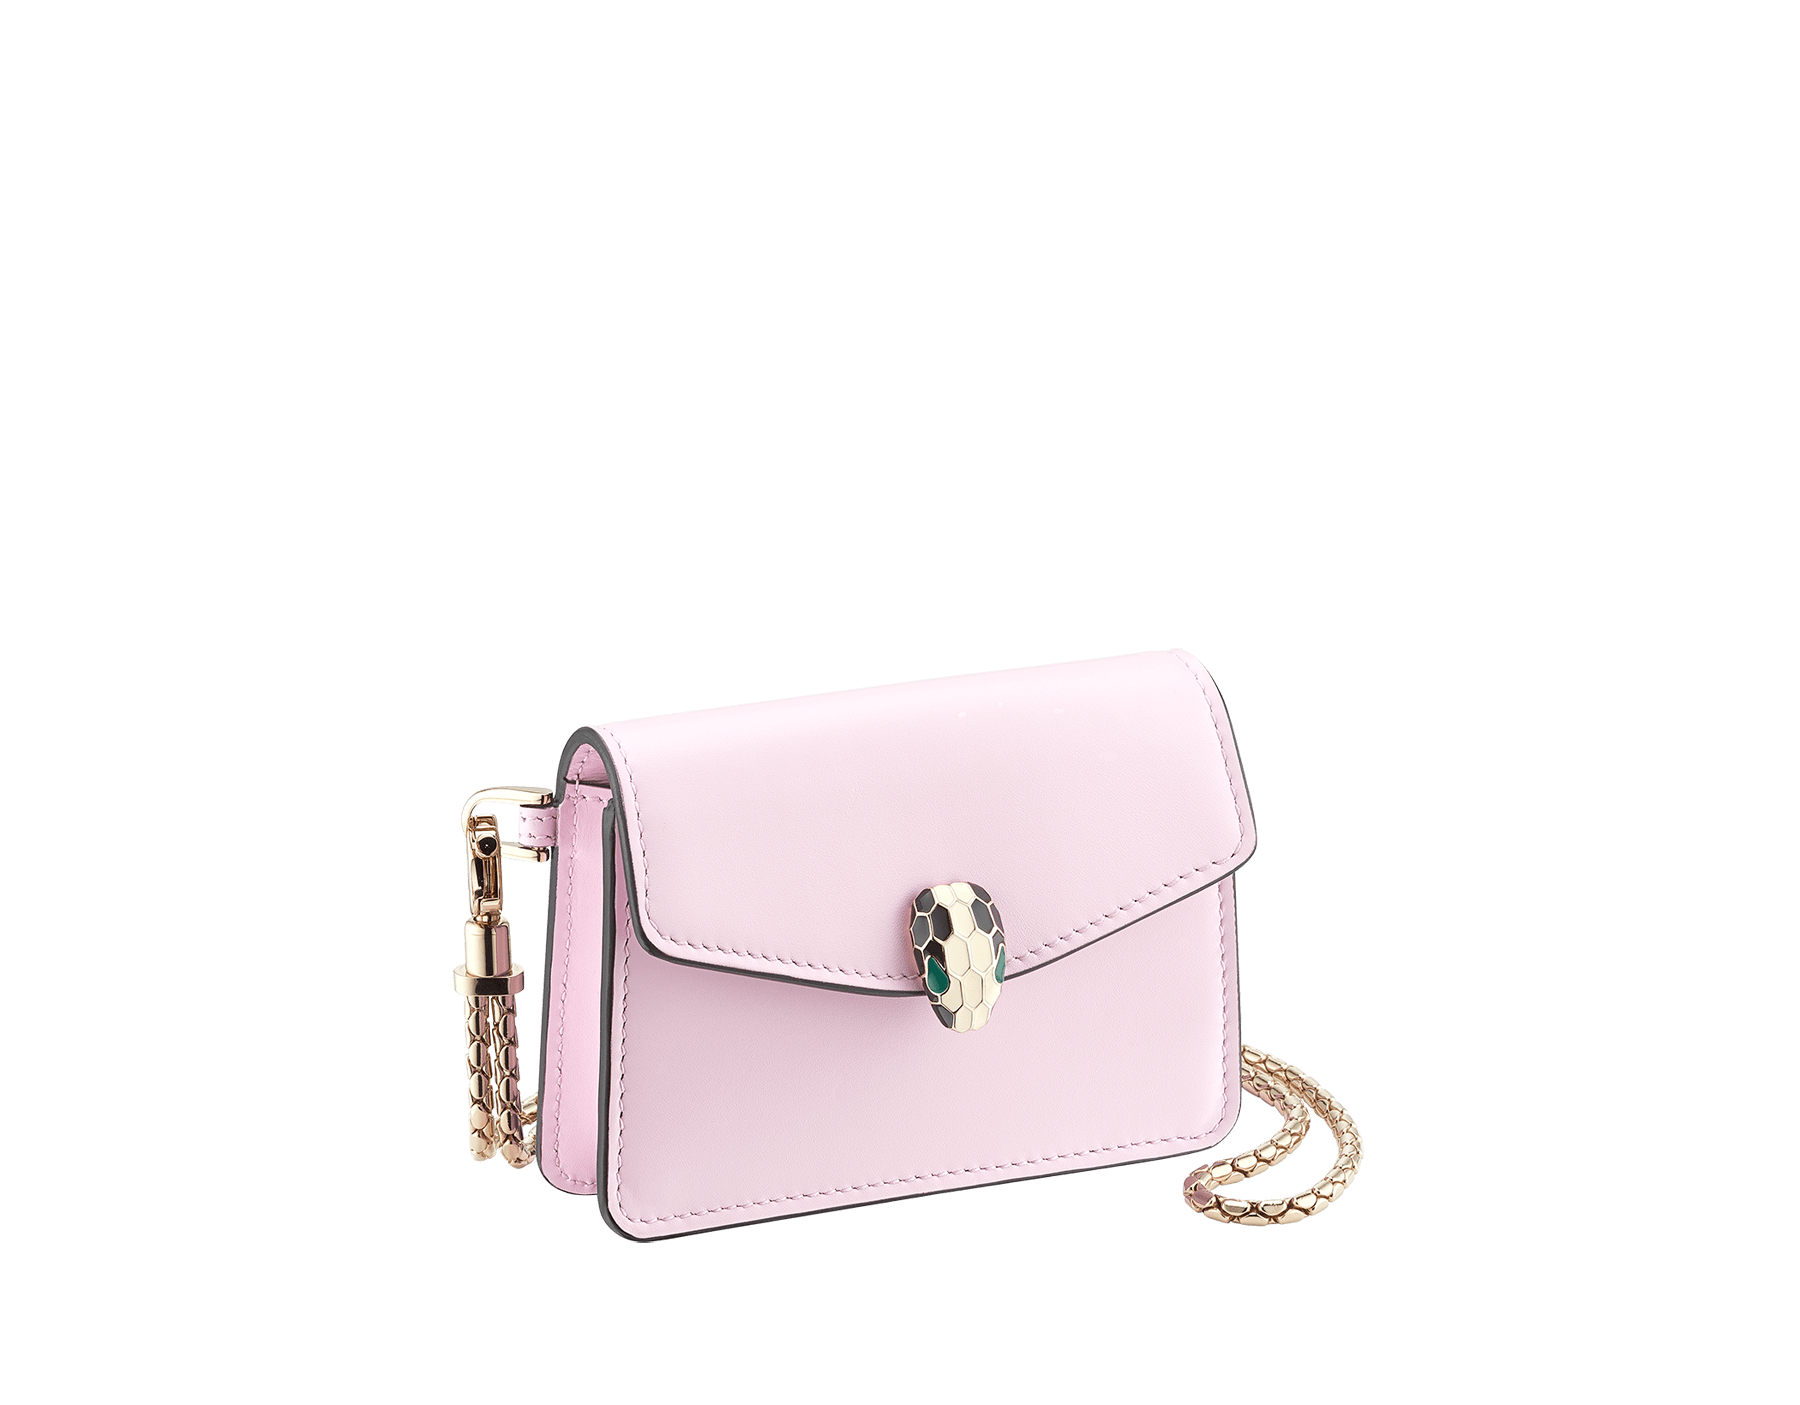 Serpenti Forever neck credit card holder in rosa di francia calf leather. Iconic snake head closure in black and white enamel, with green enamel eyes. 289397 image 1